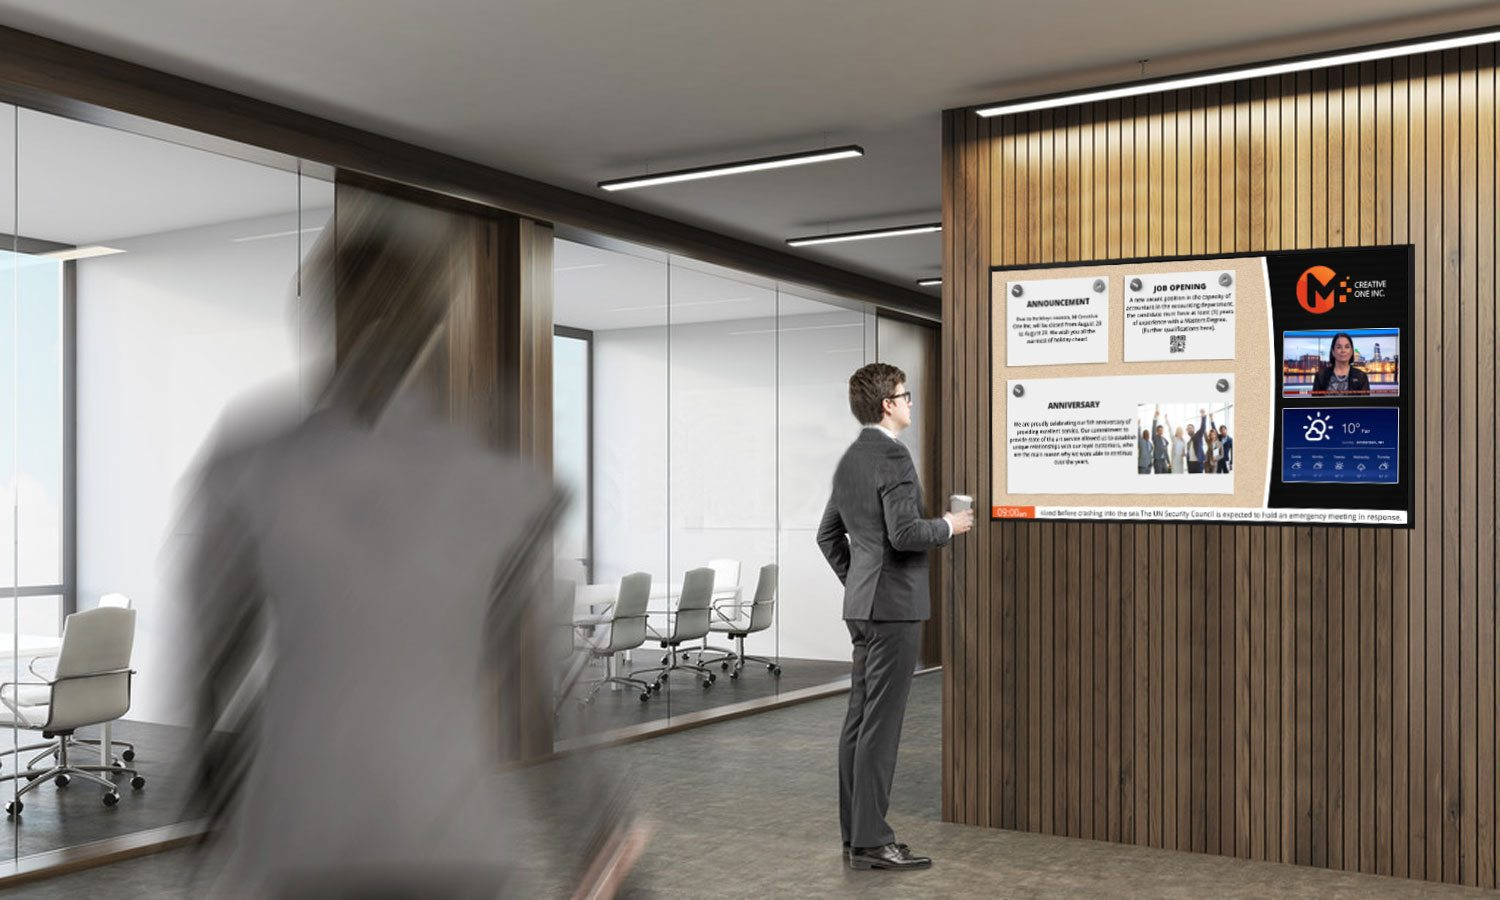 a lobby room with a man holding a cup of coffee and looking at a digital display on the wall